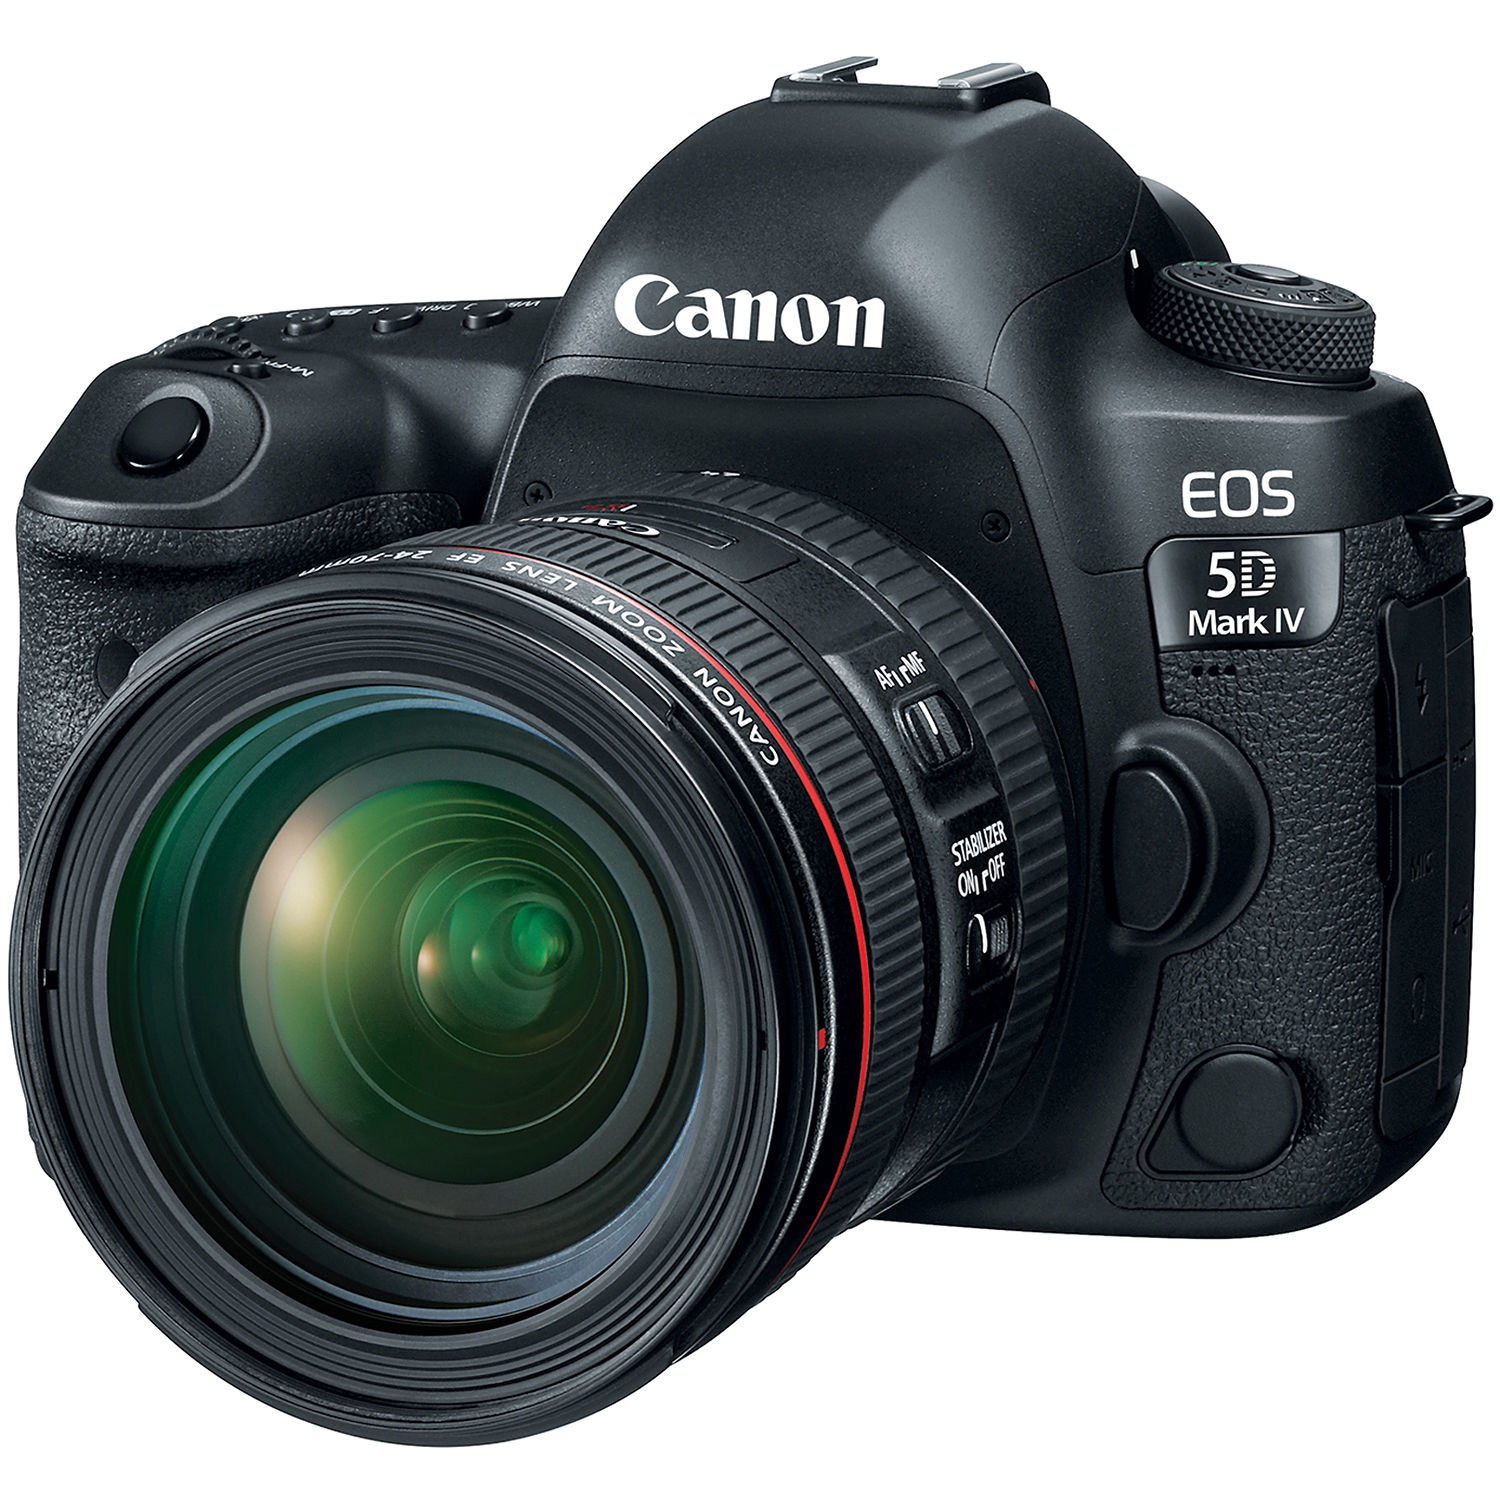 Image result for Canon EOS 5D Mark IV